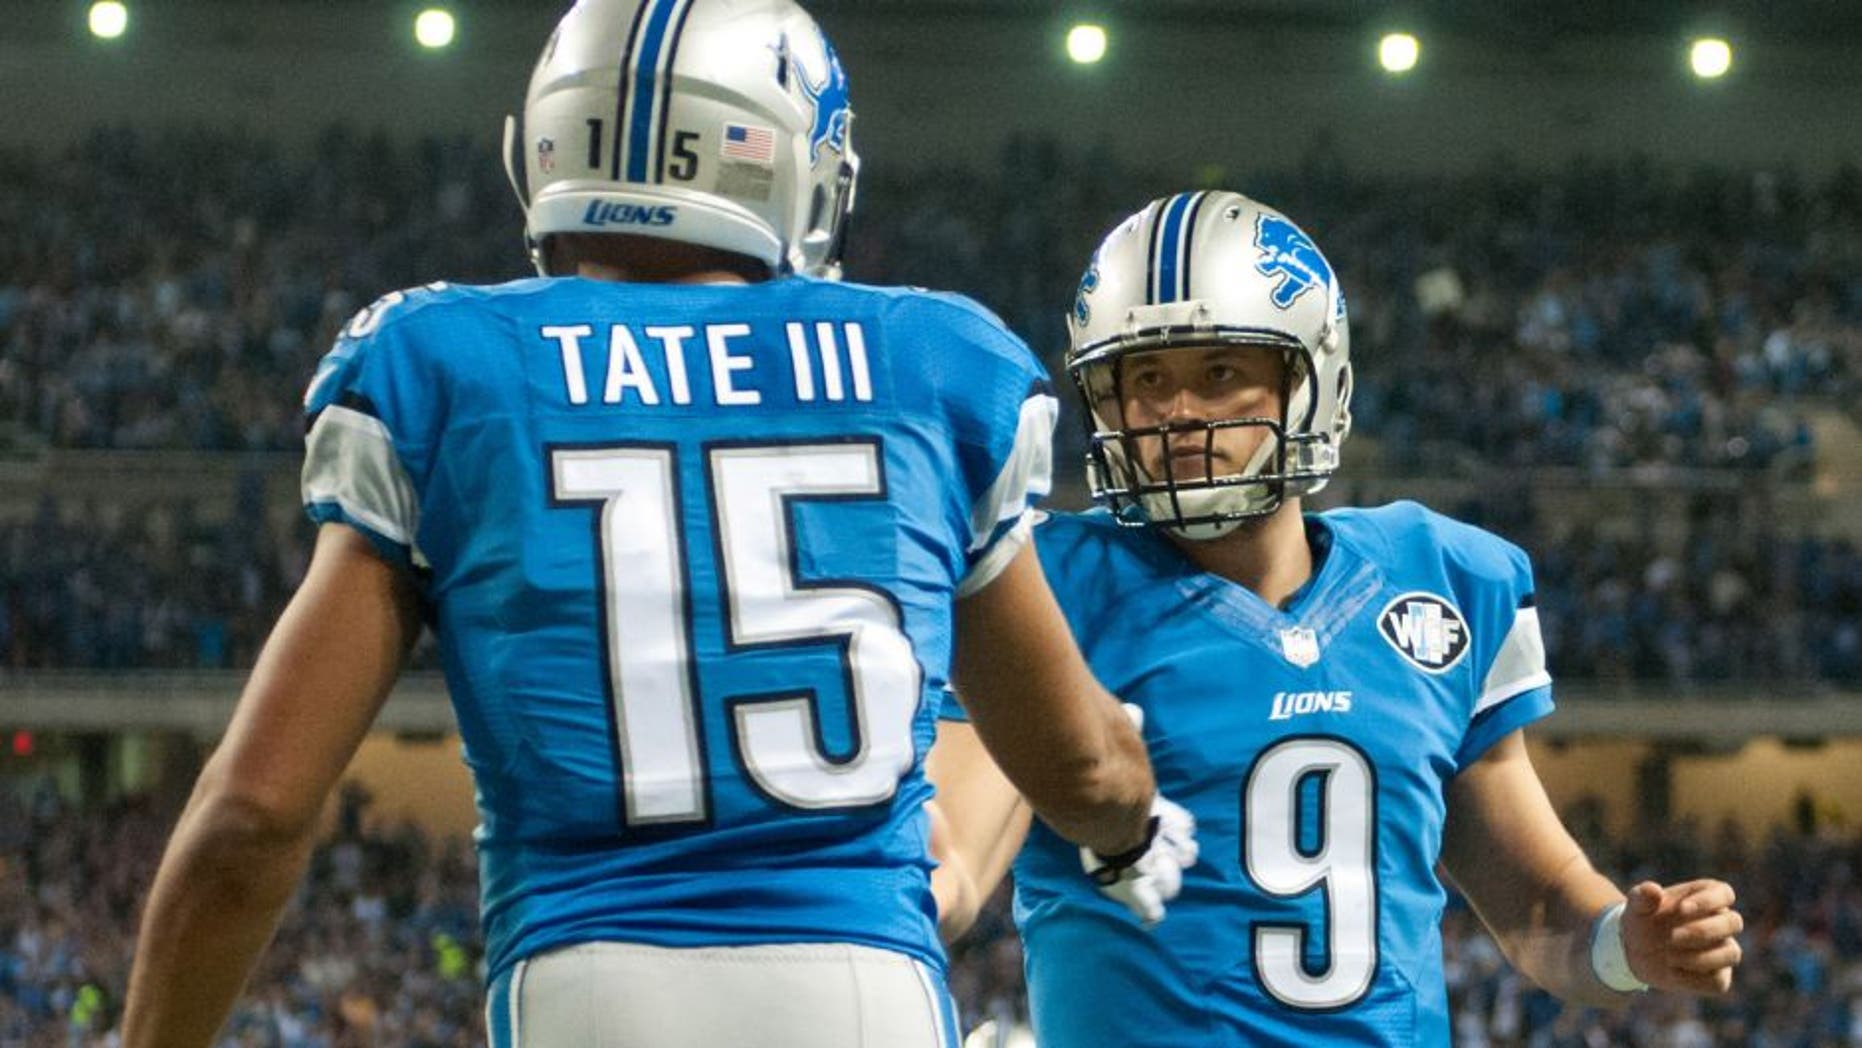 Dec 14, 2014; Detroit, MI, USA; Detroit Lions wide receiver Golden Tate (15) celebrates his touchdown with quarterback Matthew Stafford (9) during the second quarter against the Minnesota Vikings at Ford Field. Mandatory Credit: Tim Fuller-USA TODAY Sports